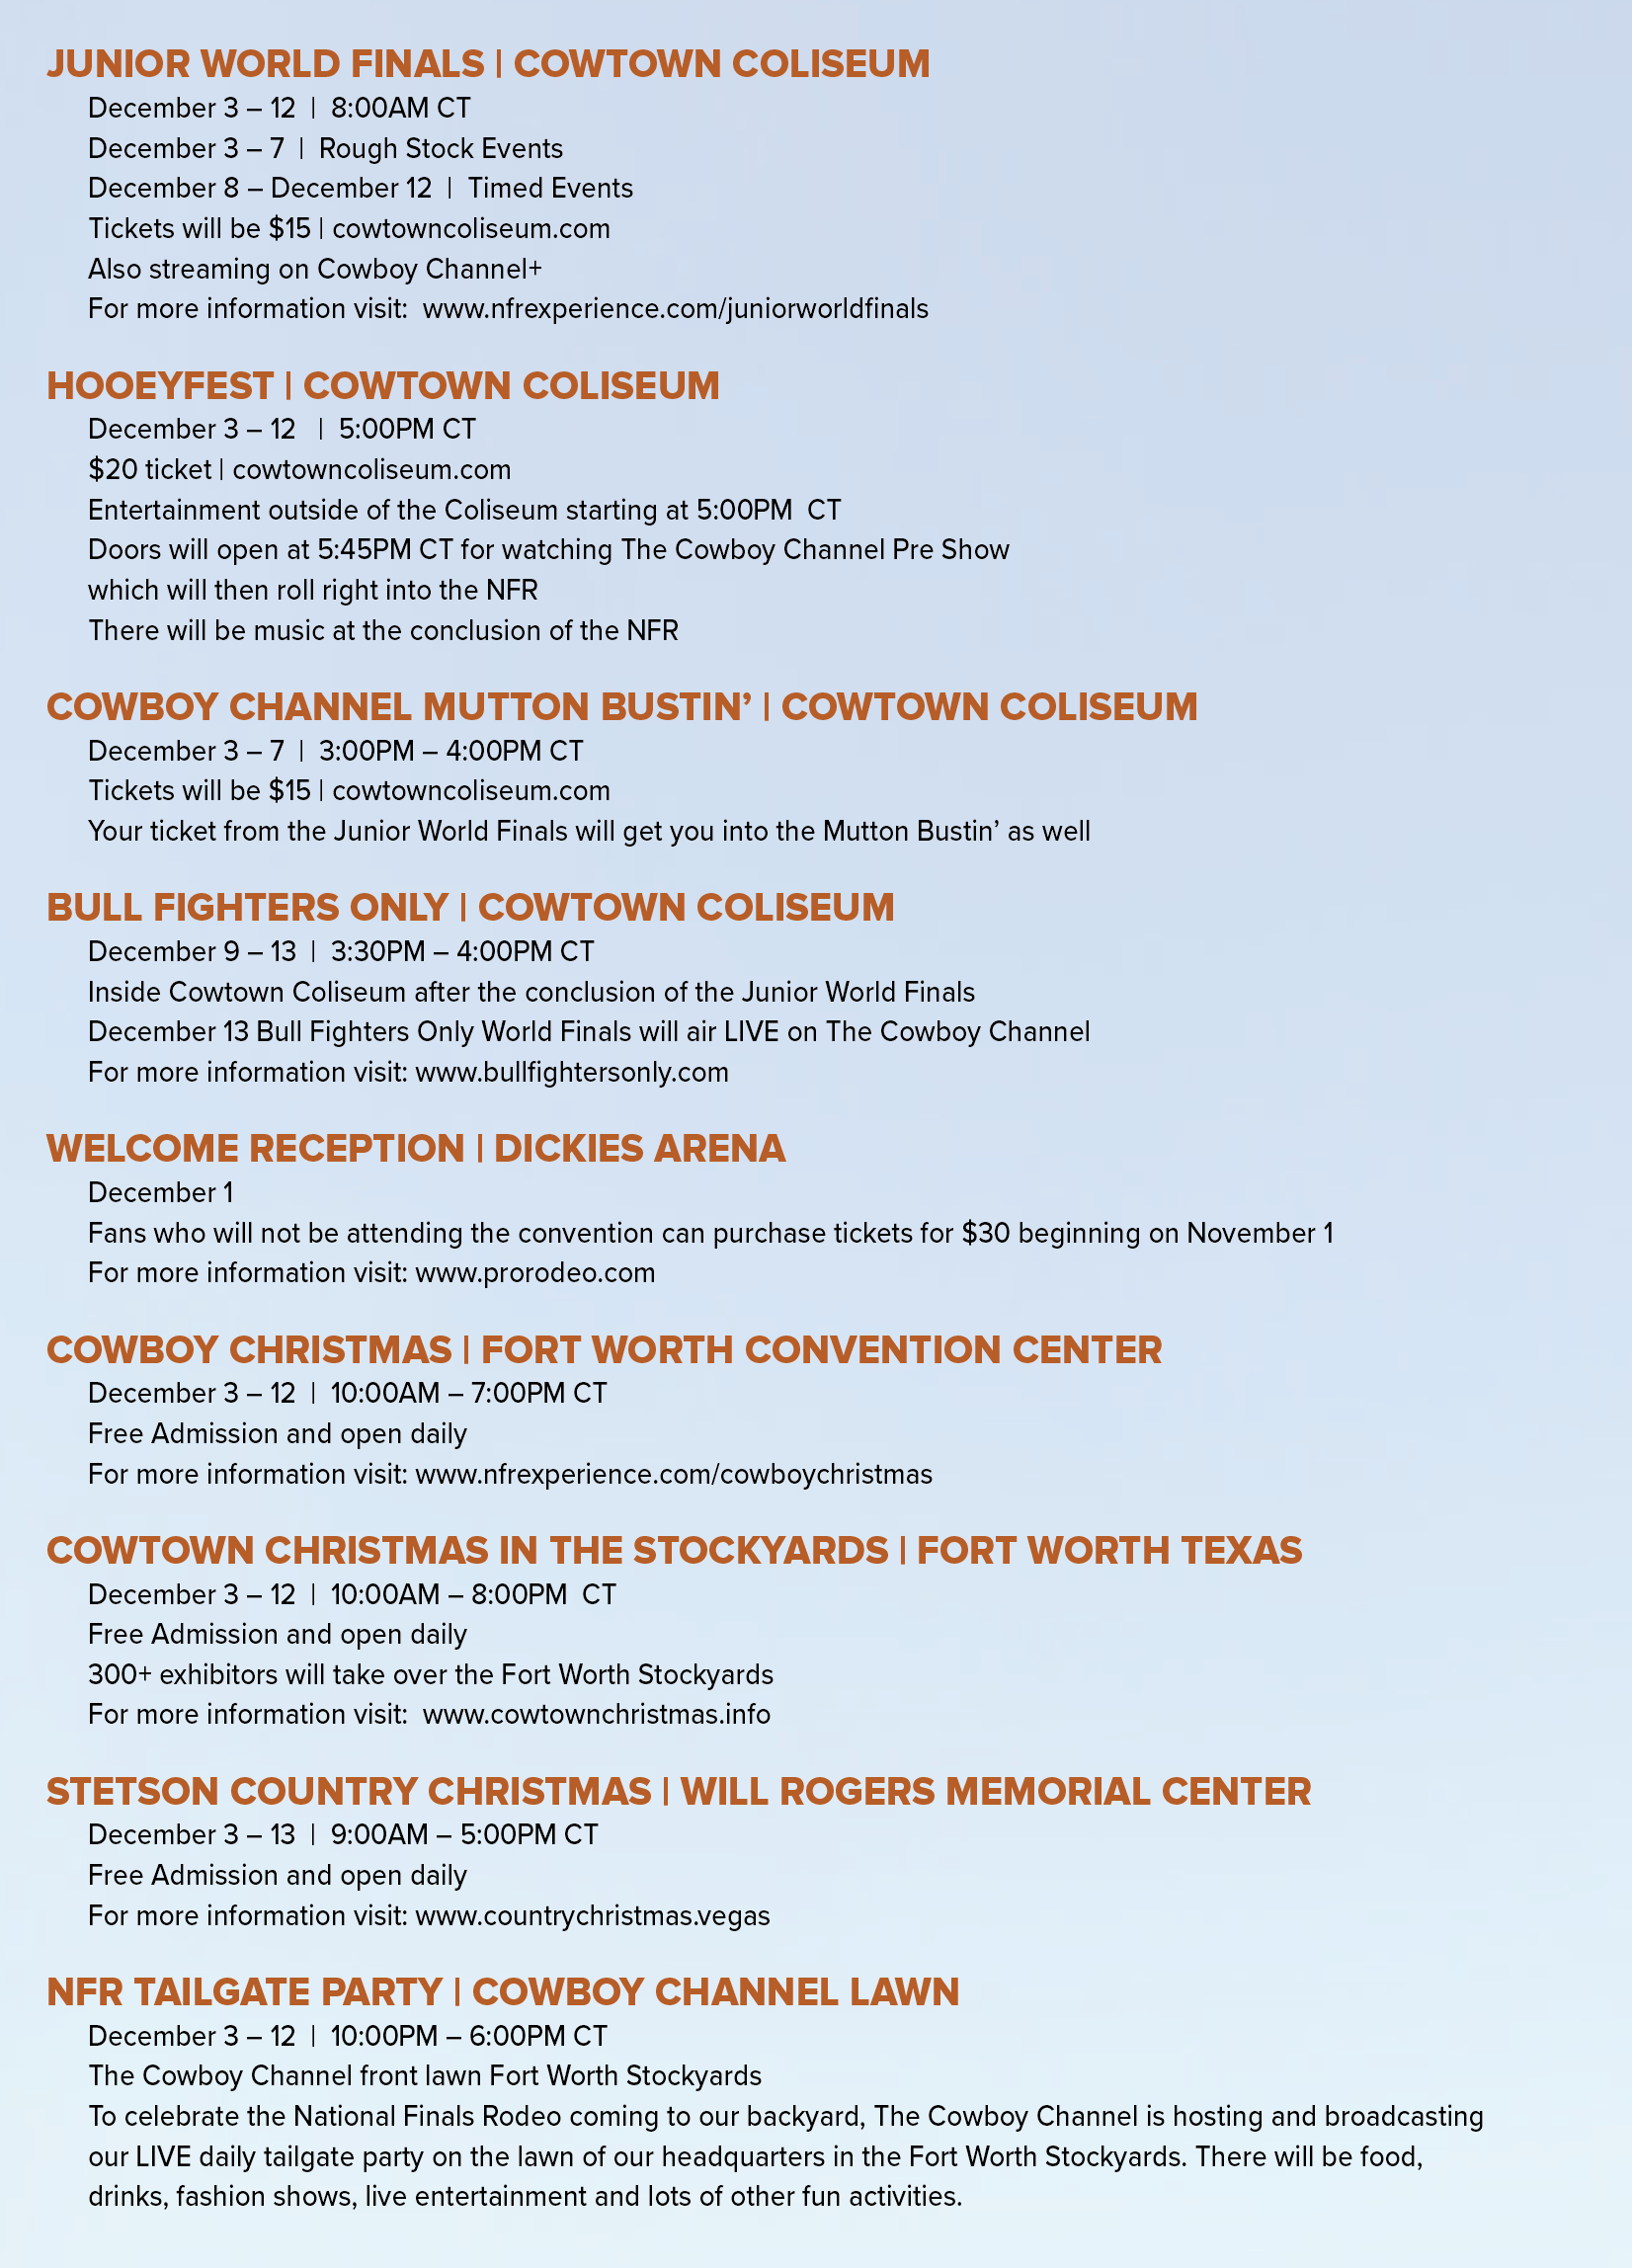 Fort Worth Christmas Party 2020 NFR 2020 Events Schedule: Fort Worth Stockyards   The Cowboy Channel